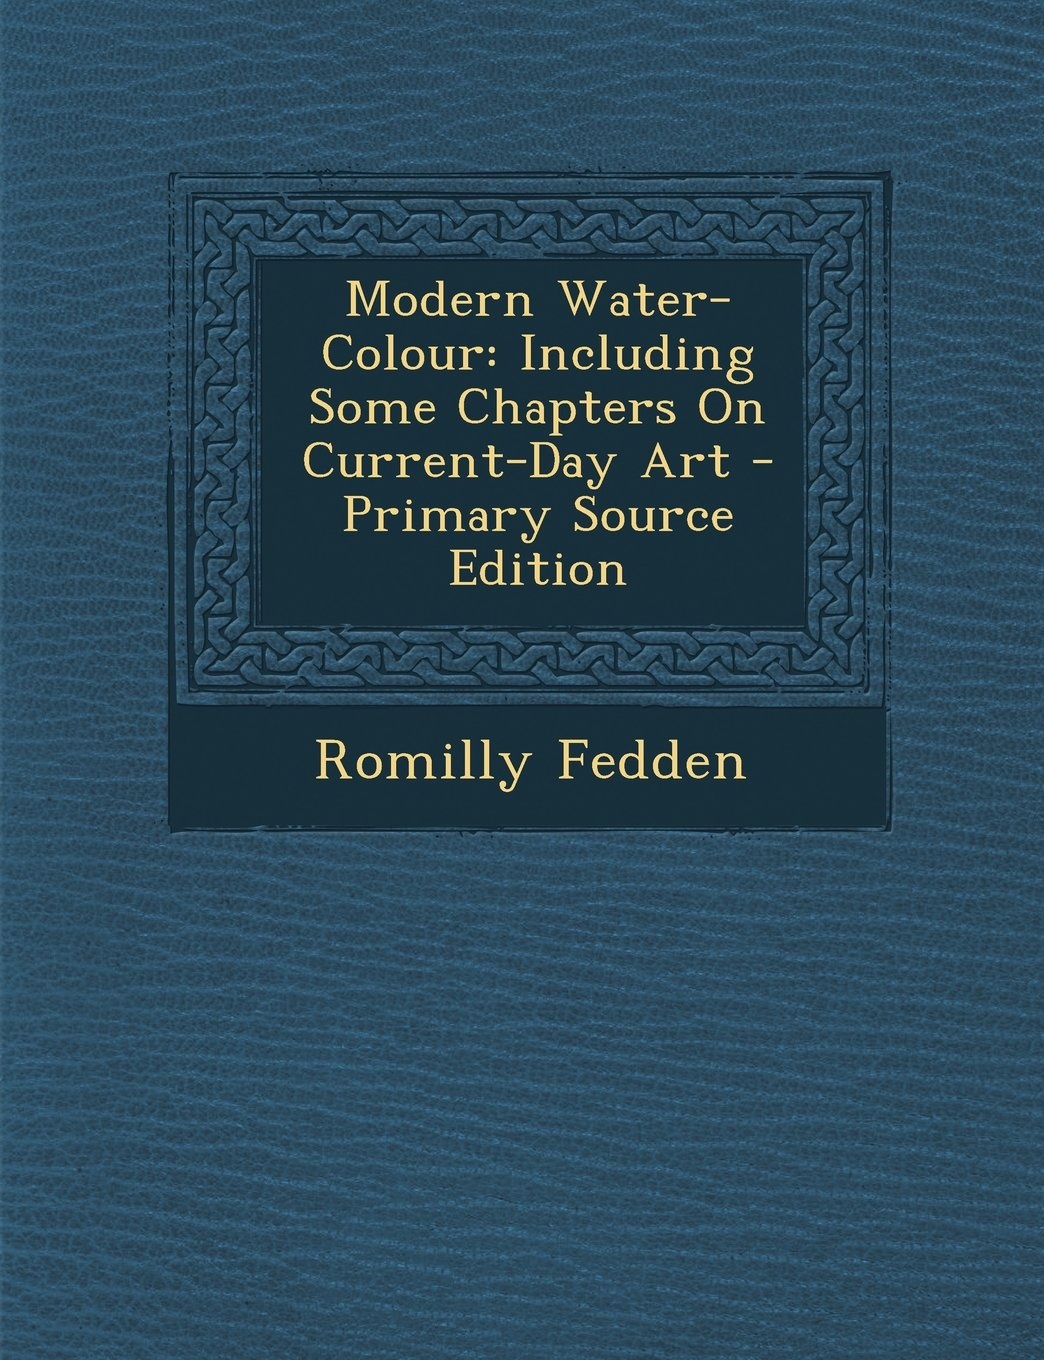 Download Modern Water-Colour: Including Some Chapters On Current-Day Art - Primary Source Edition ebook